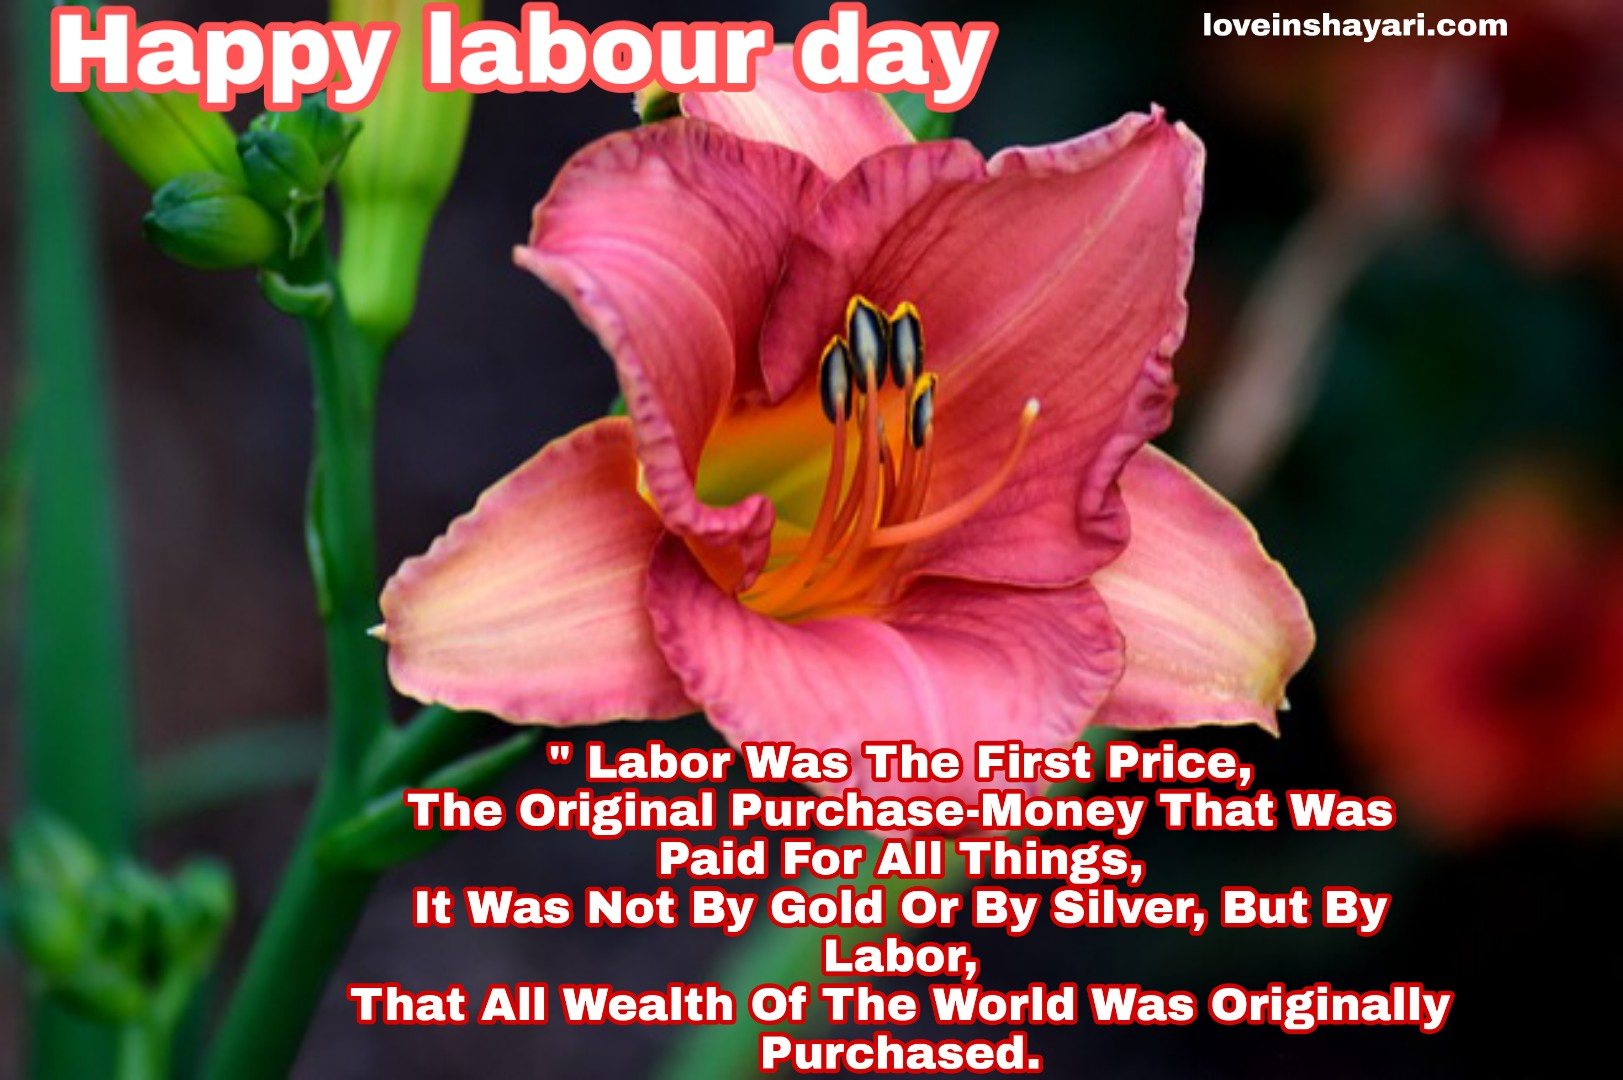 Labour day images